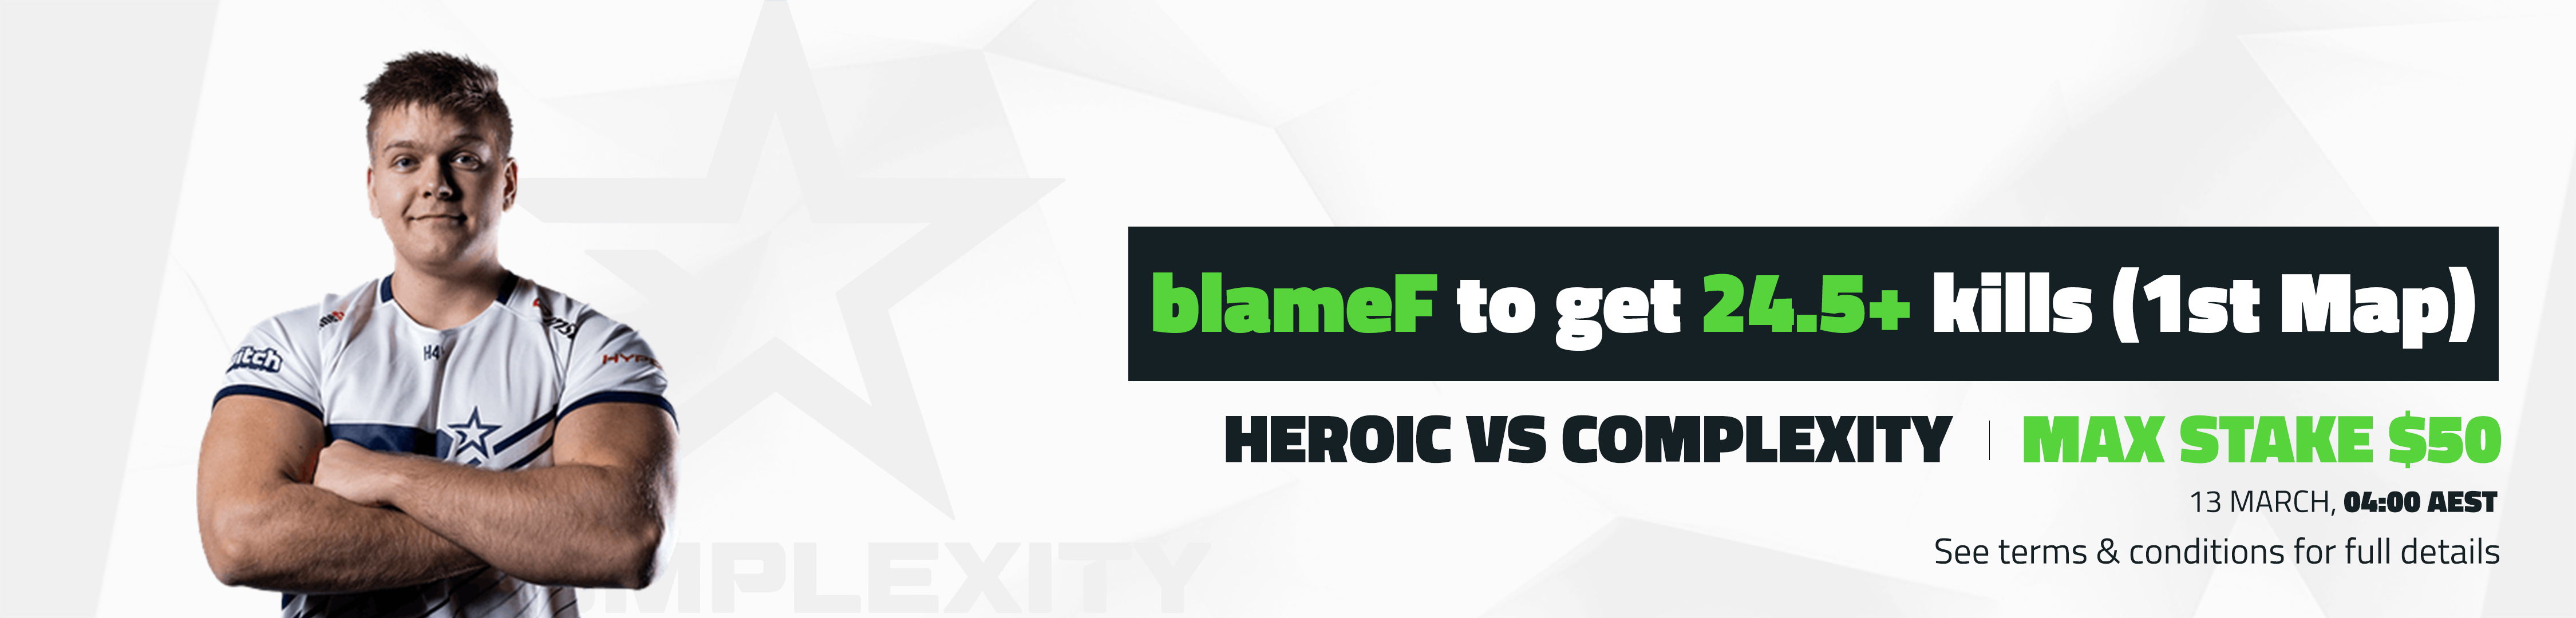 blameF 1st map kills vs heroic